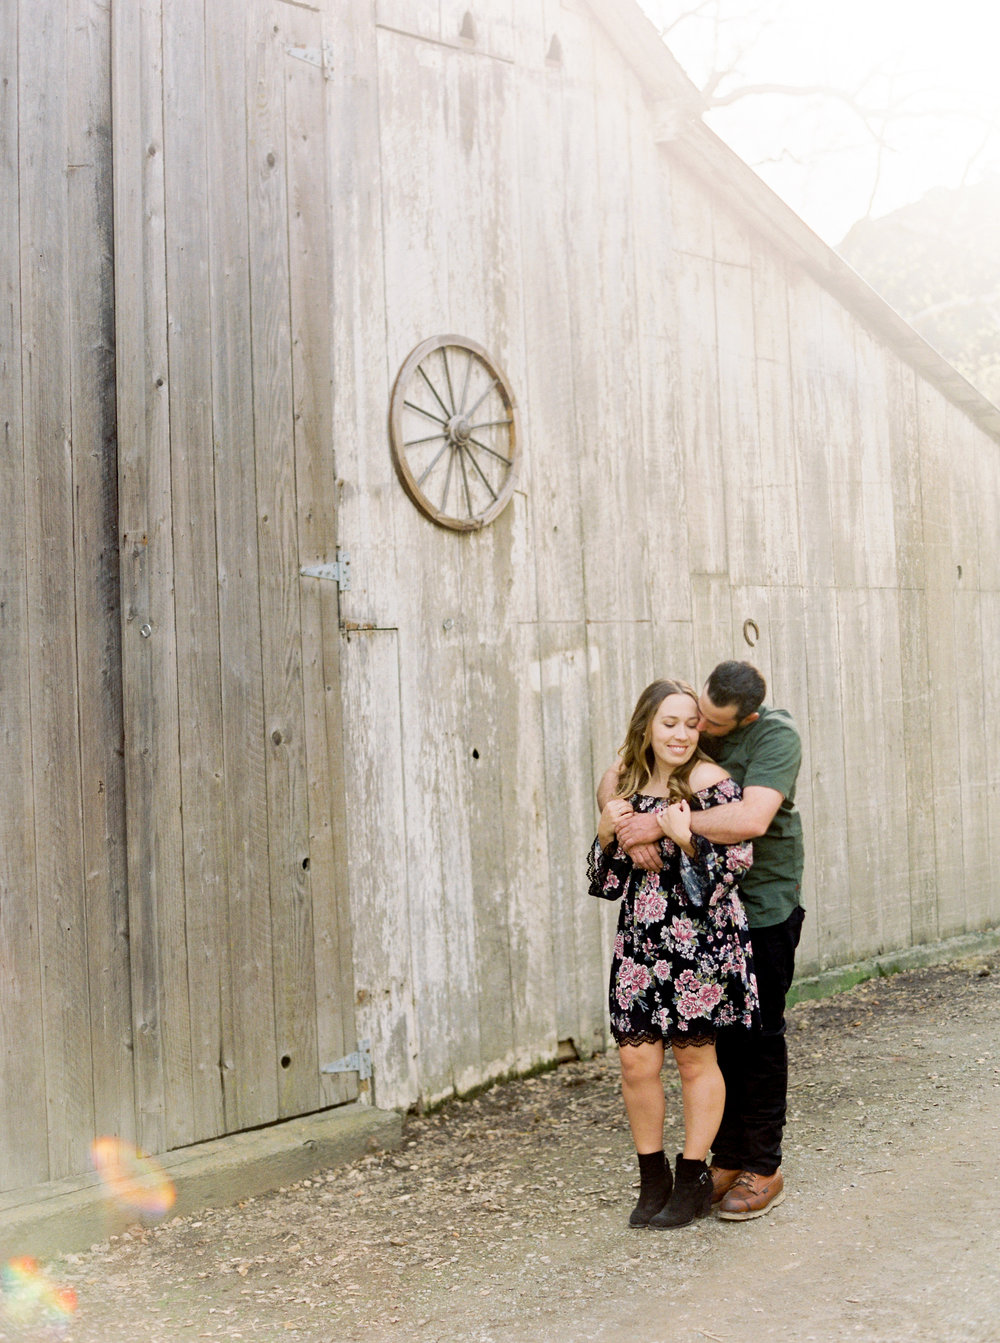 Sunol California Engagement Shoot - Kristine Herman Photography-3.jpg